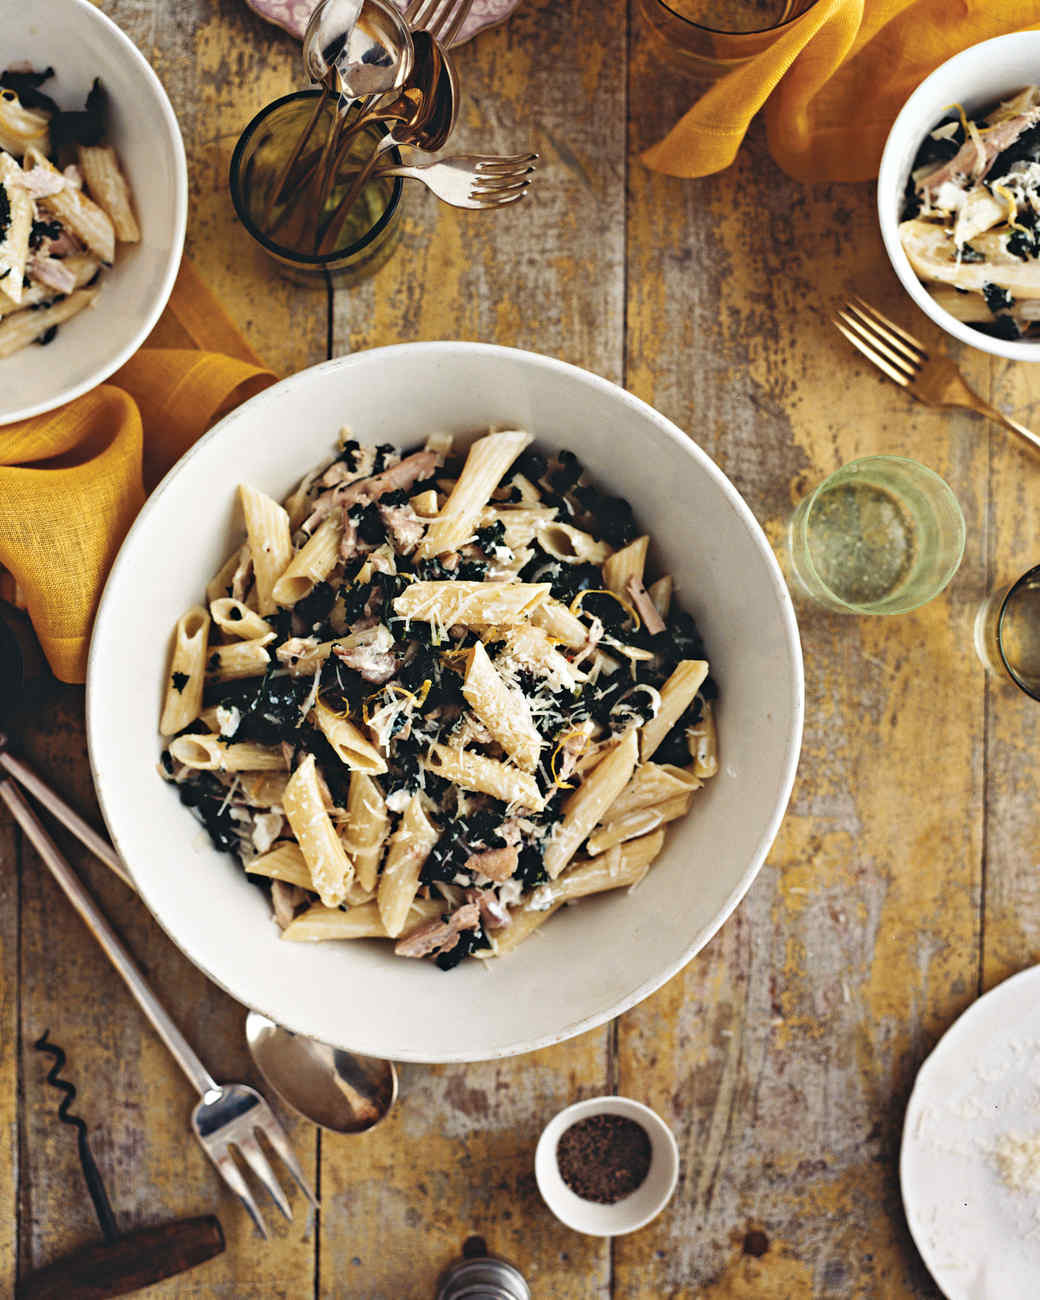 Kale Thanksgiving Recipes  Penne with Goat Cheese Kale Olives and Turkey Recipe